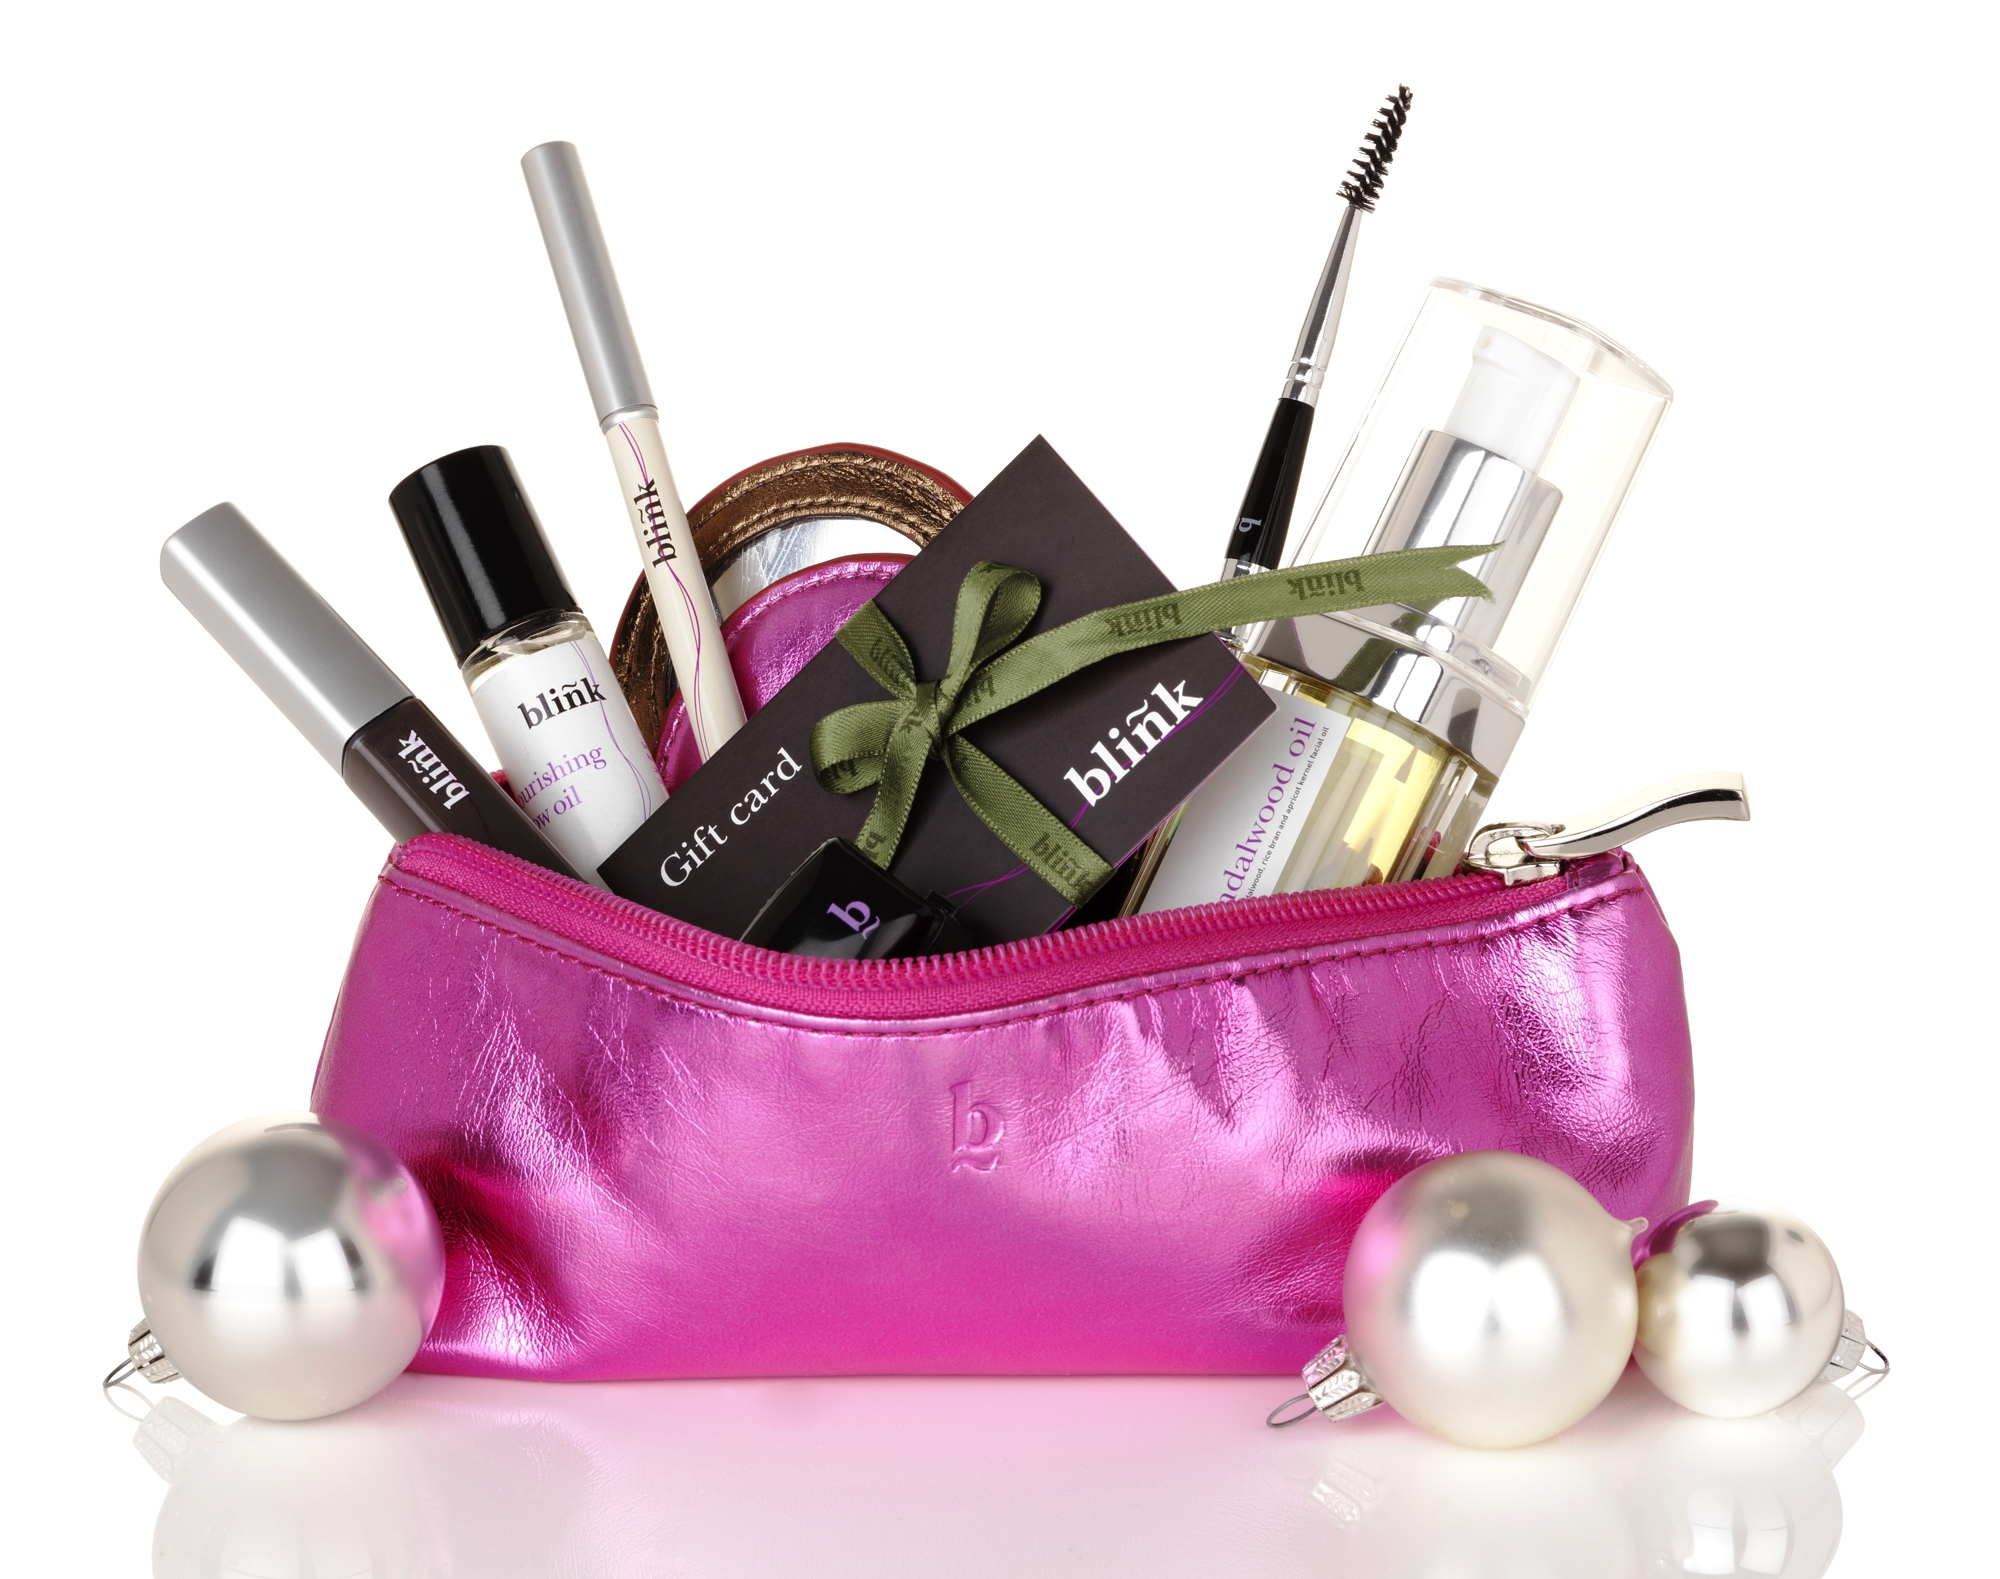 10 Beautiful Make Up Bags 2015 10 Beautiful Make Up Bags 2015 make up bags 2015 7